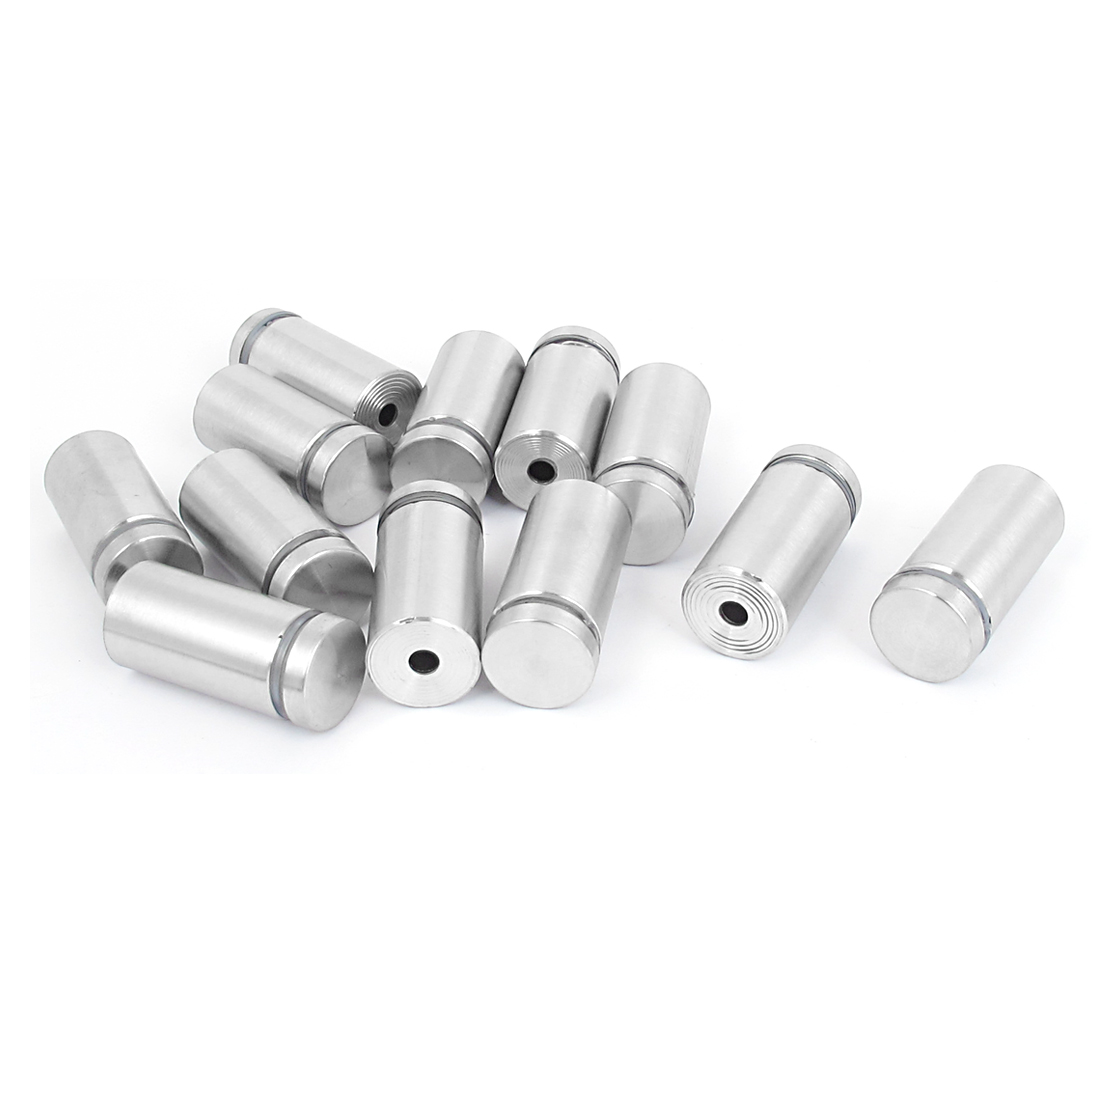 19mm x 40mm Stainless Steel Advertising Frameless Glass Standoff Pins 12pcs